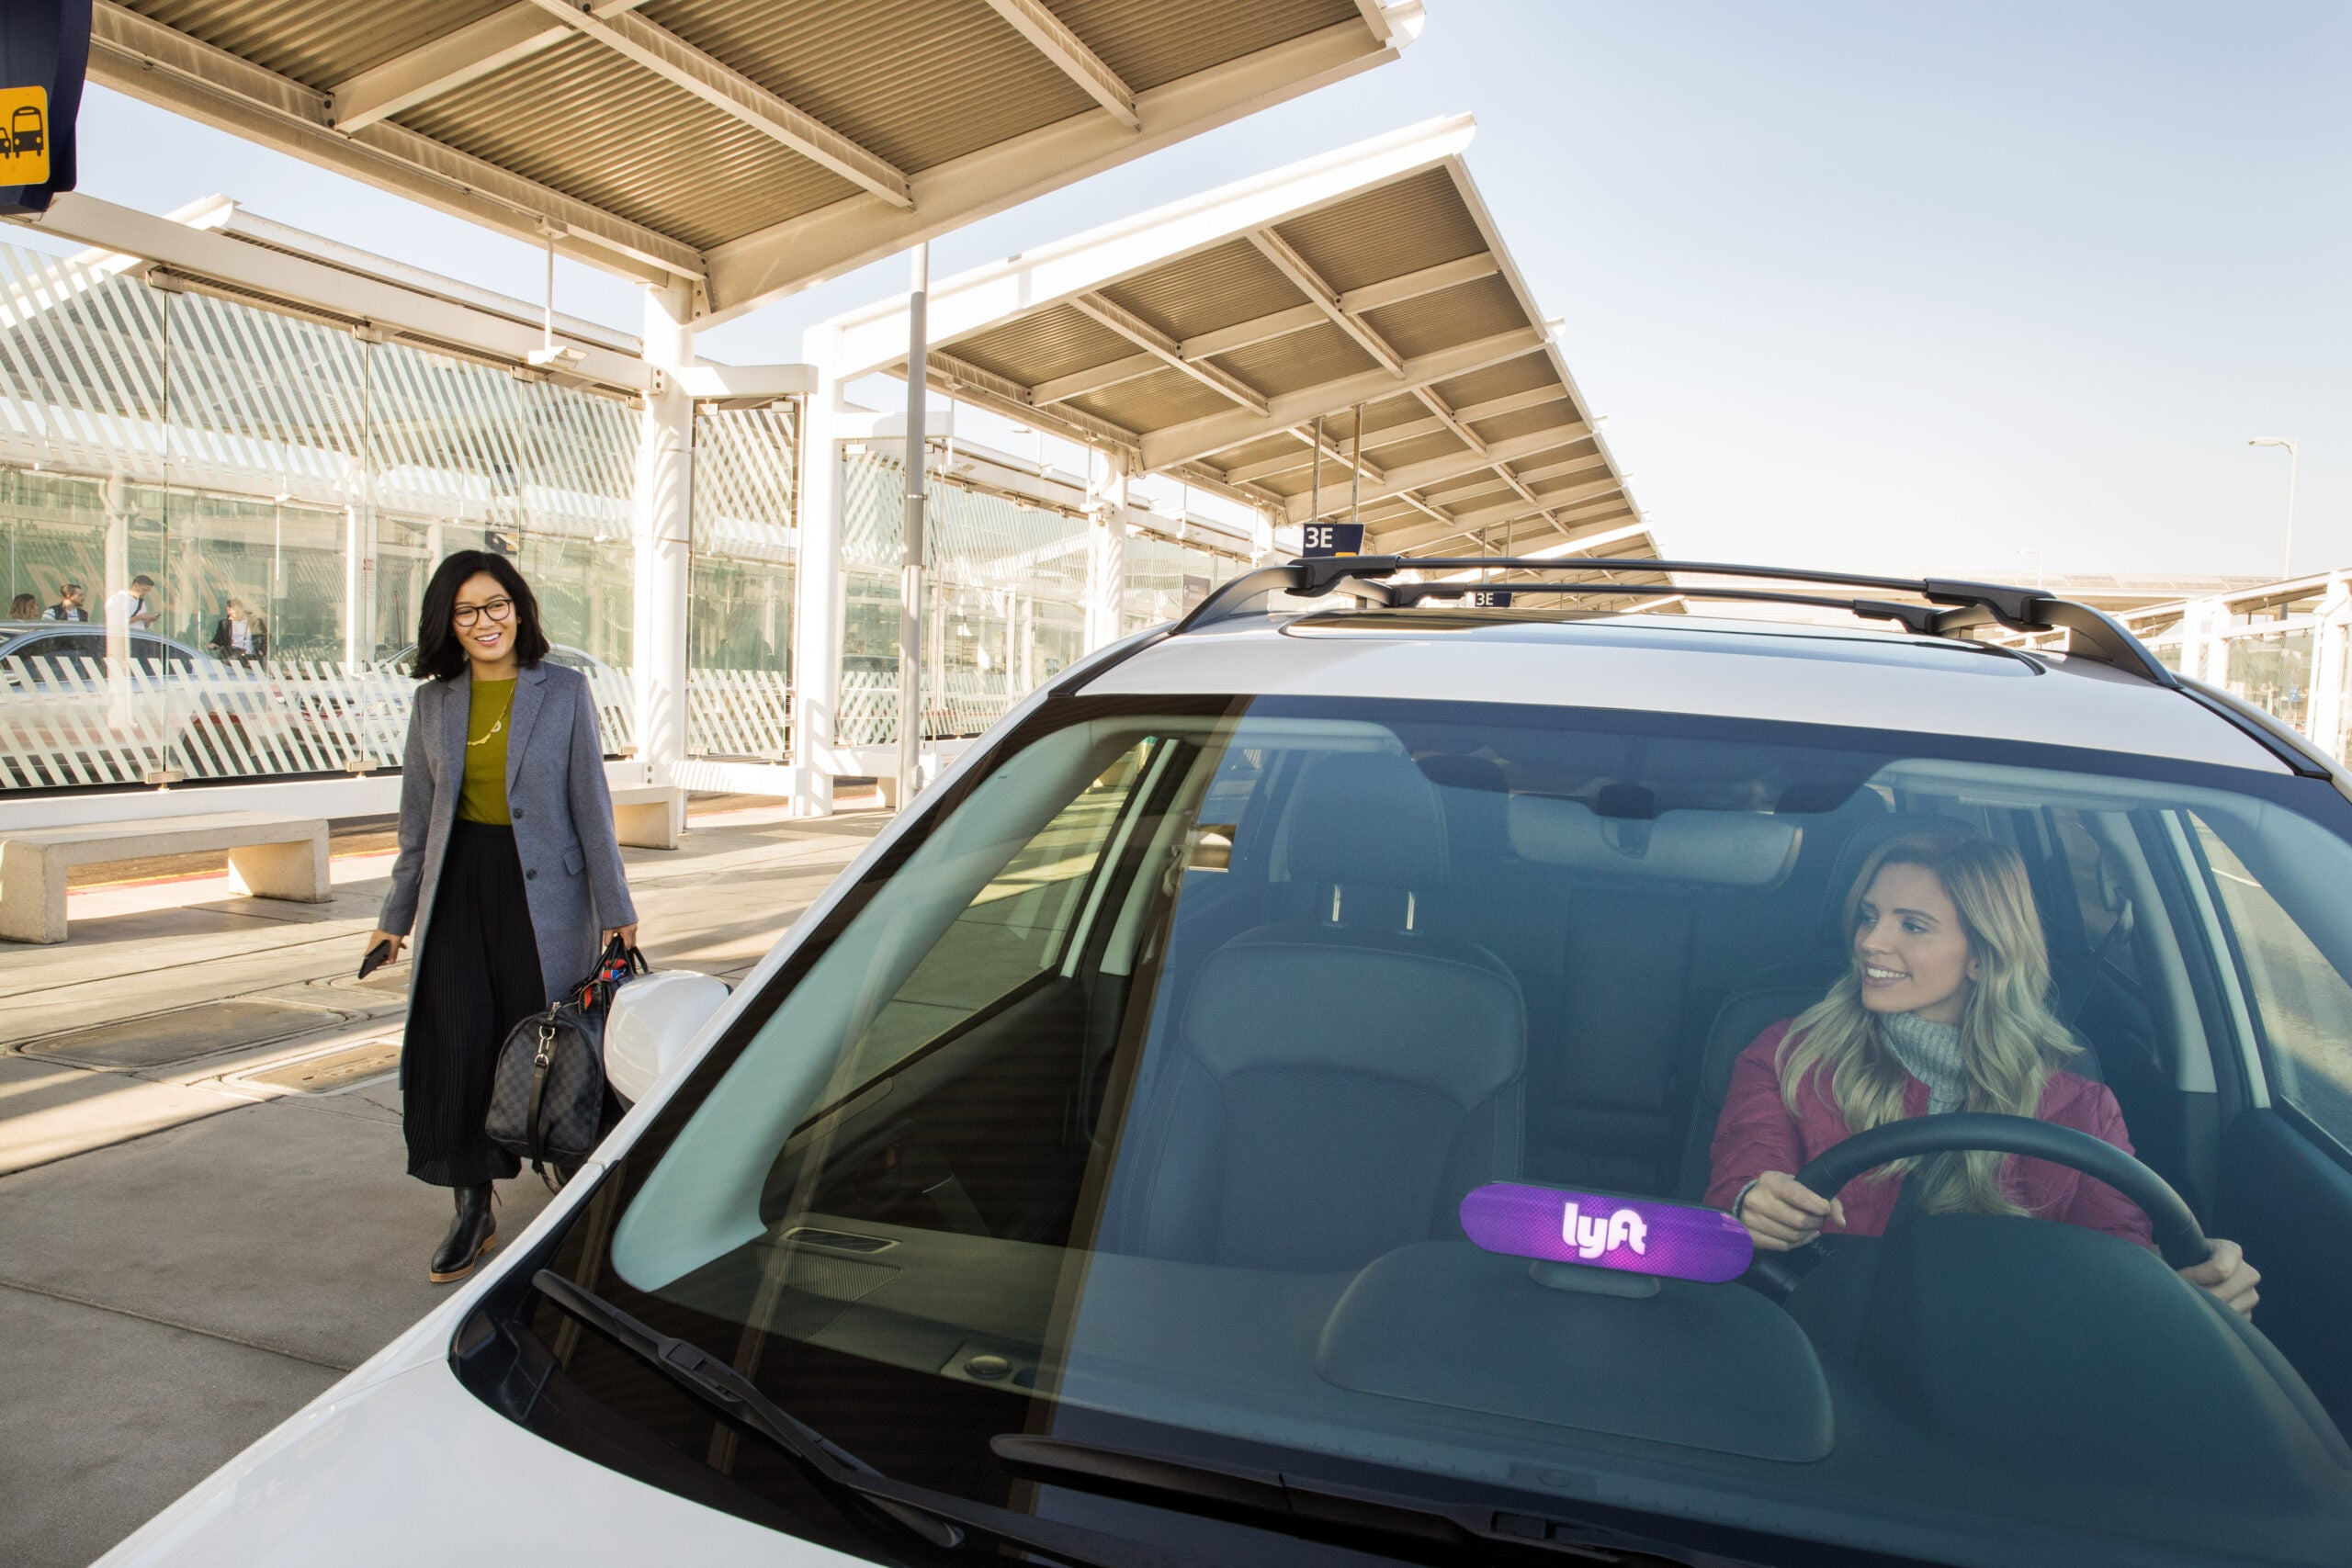 Someday, you might subscribe to a self-driving taxi service, Netflix-style